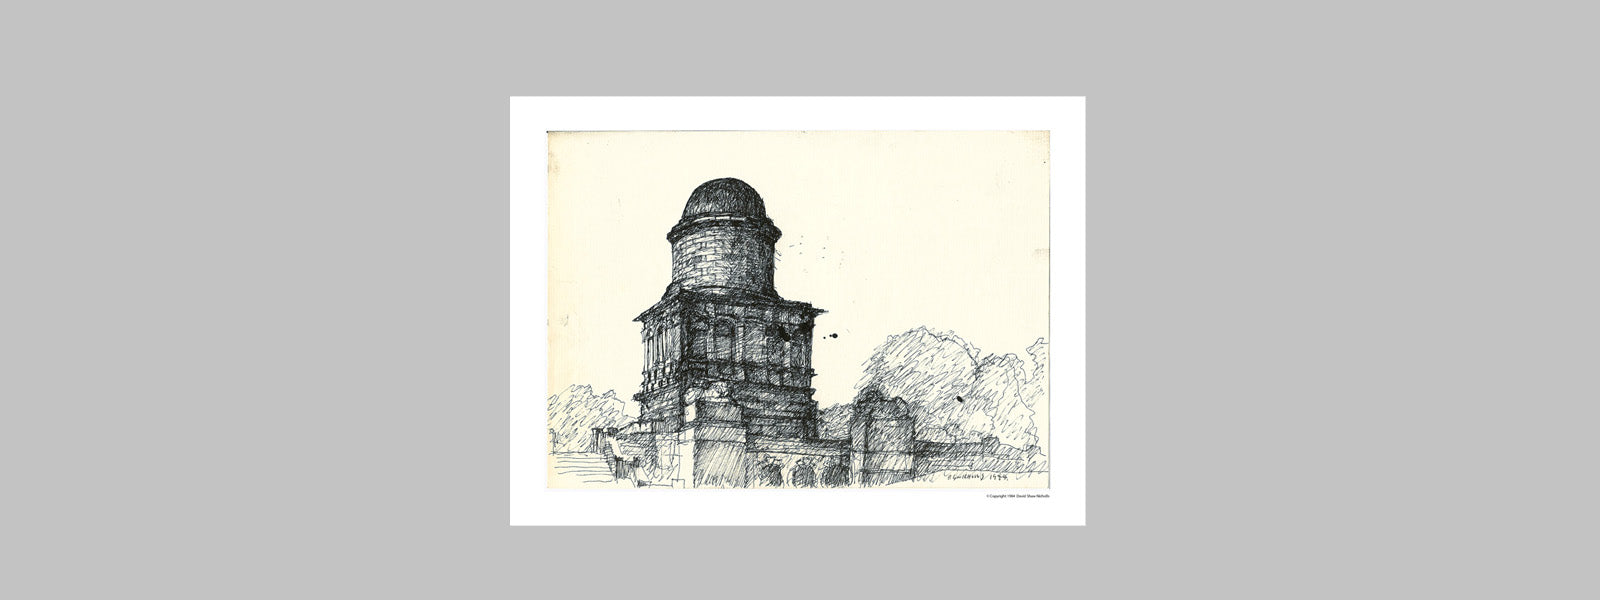 HAMILTON MAUSOLEUM, Printworks: Unlimited Edition